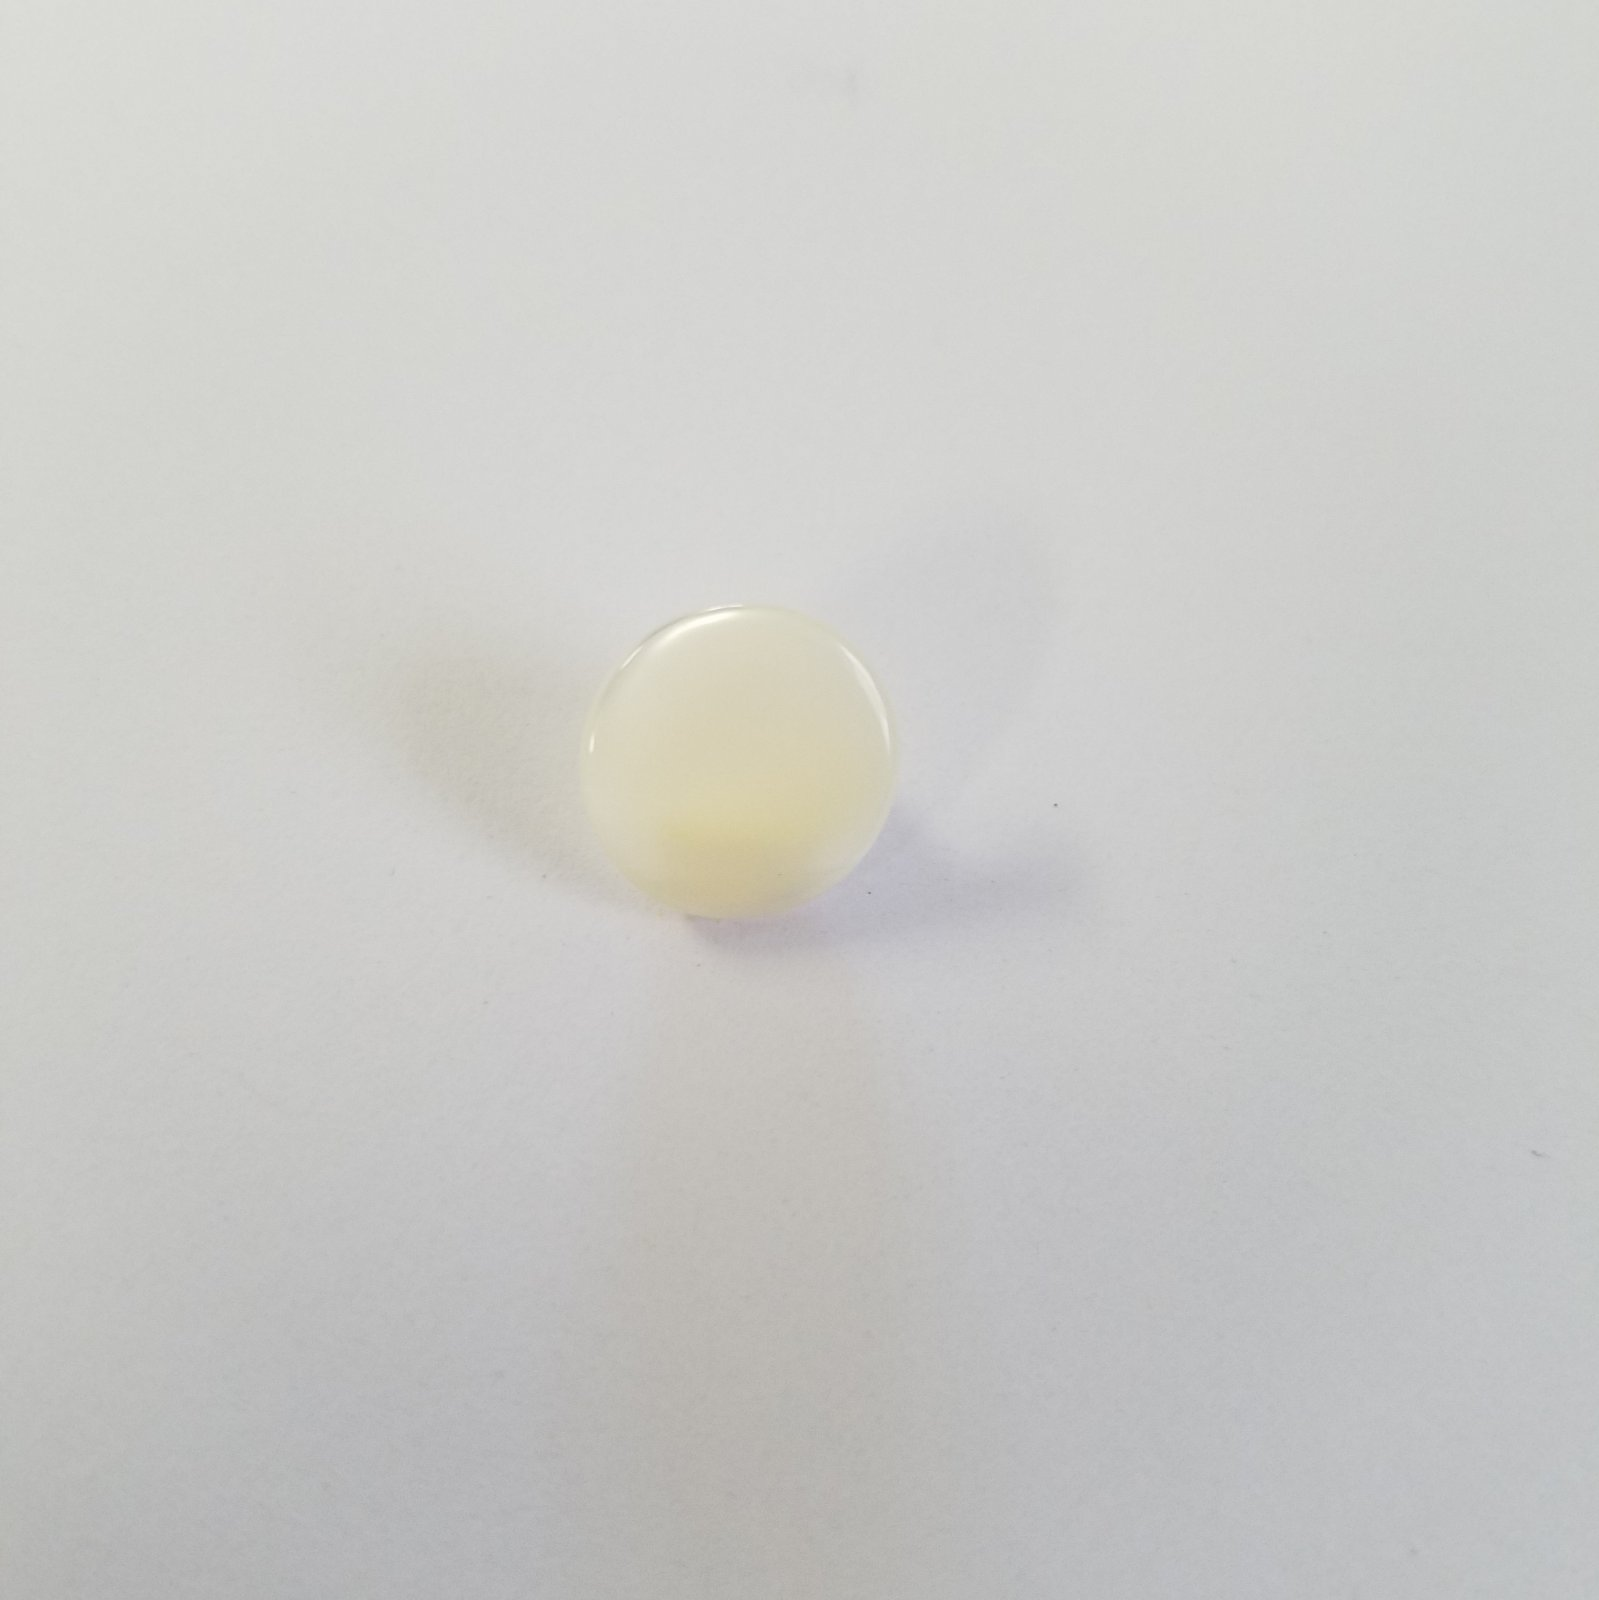 11 MM Small Round Pearl Finish Flat Button